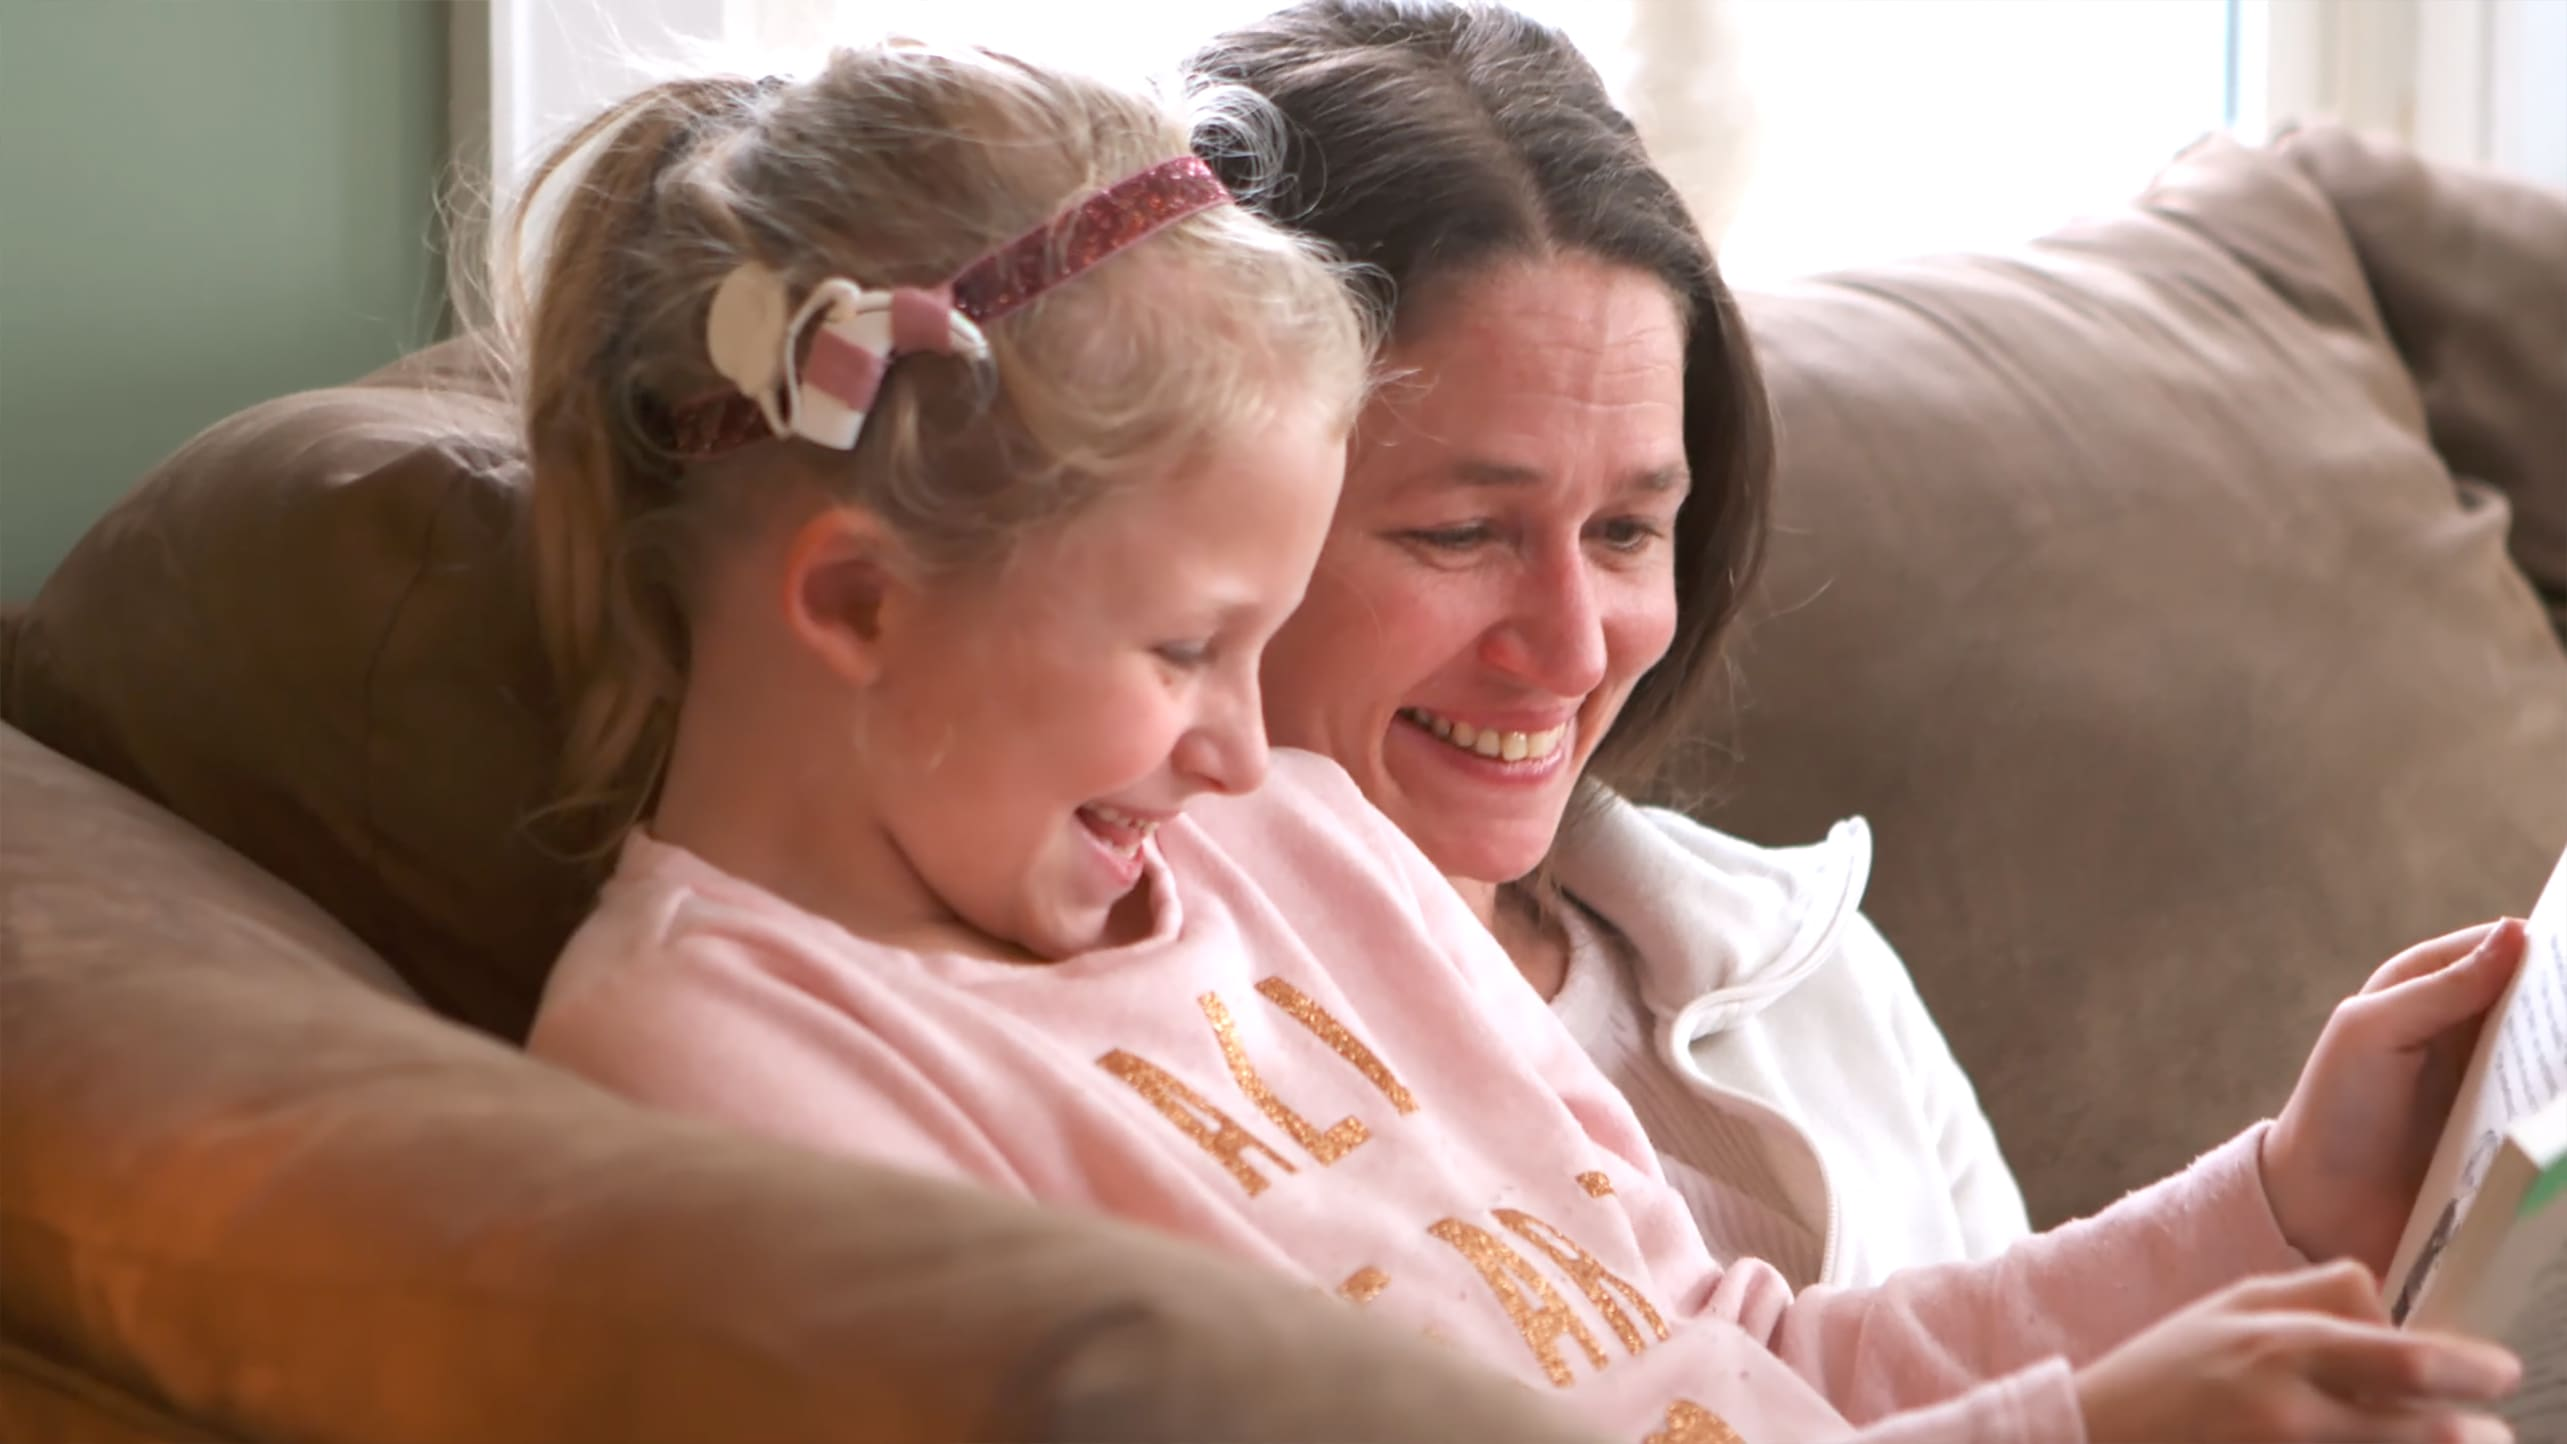 A little girl with a cochlear implant reads with her mother.